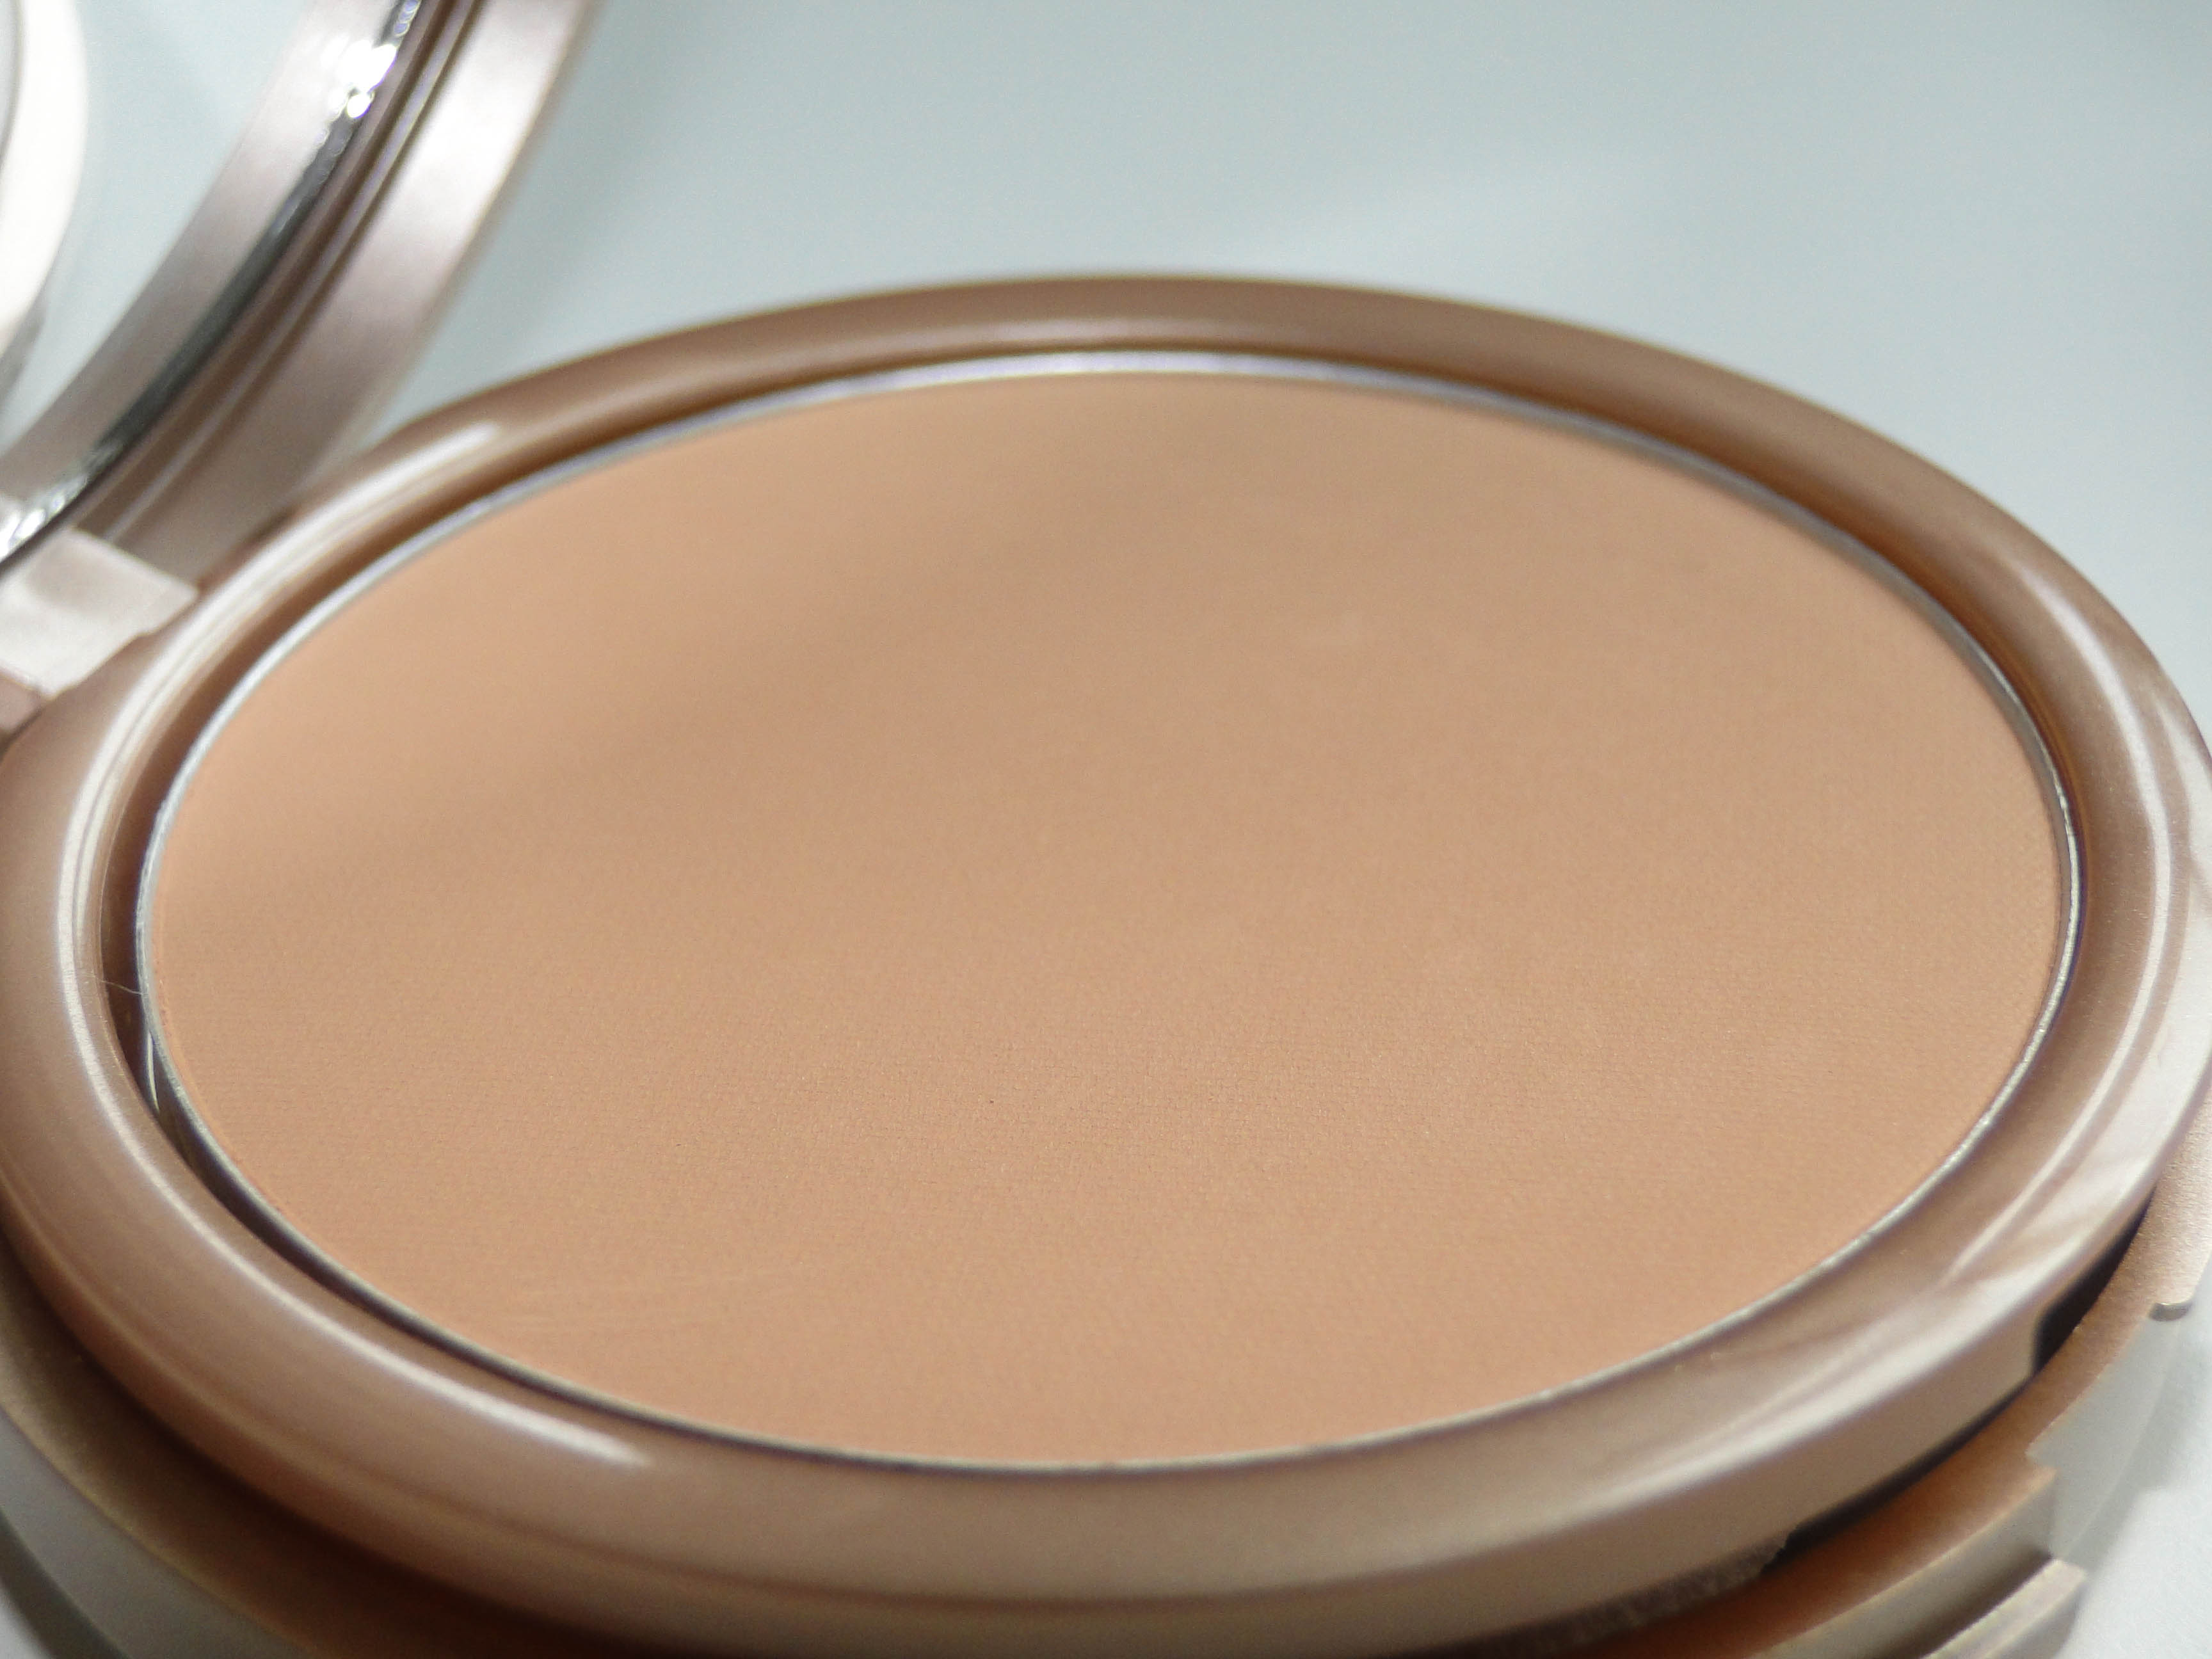 Kiko Life in Rio Sunproof Powder Foundation 2